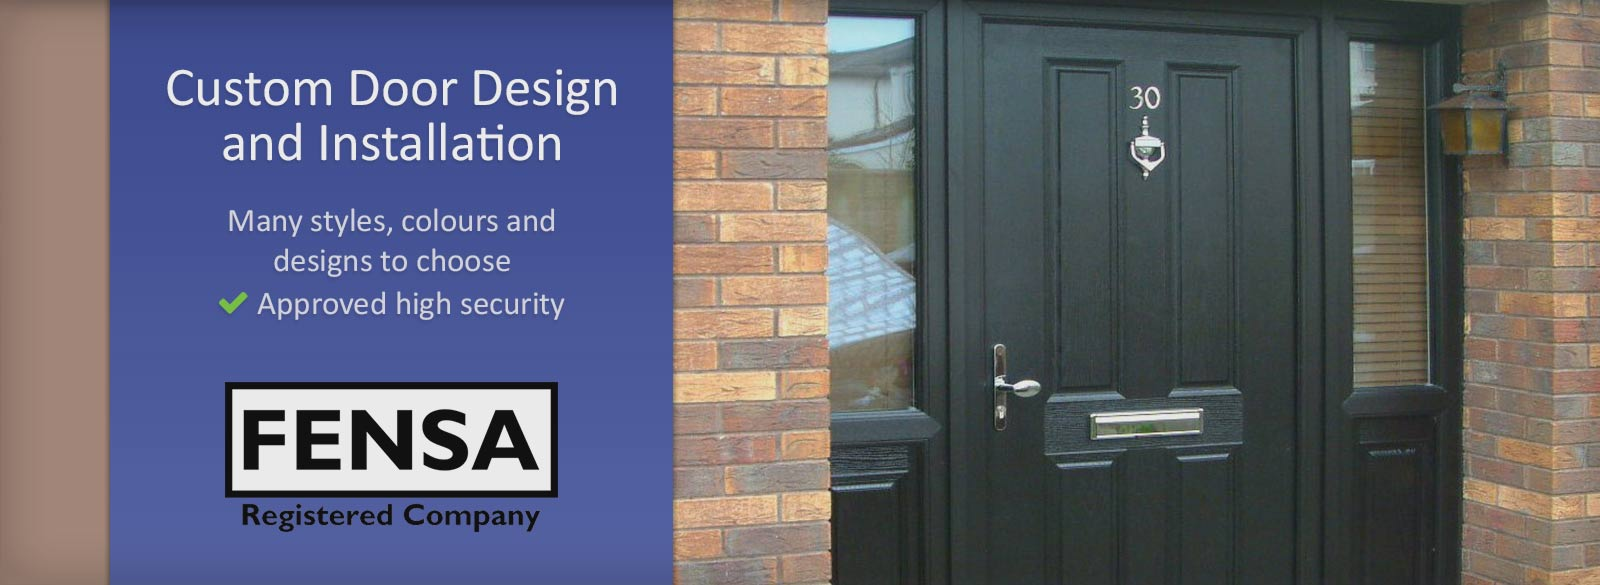 Solid brown composite door with brass trim, design and installation service